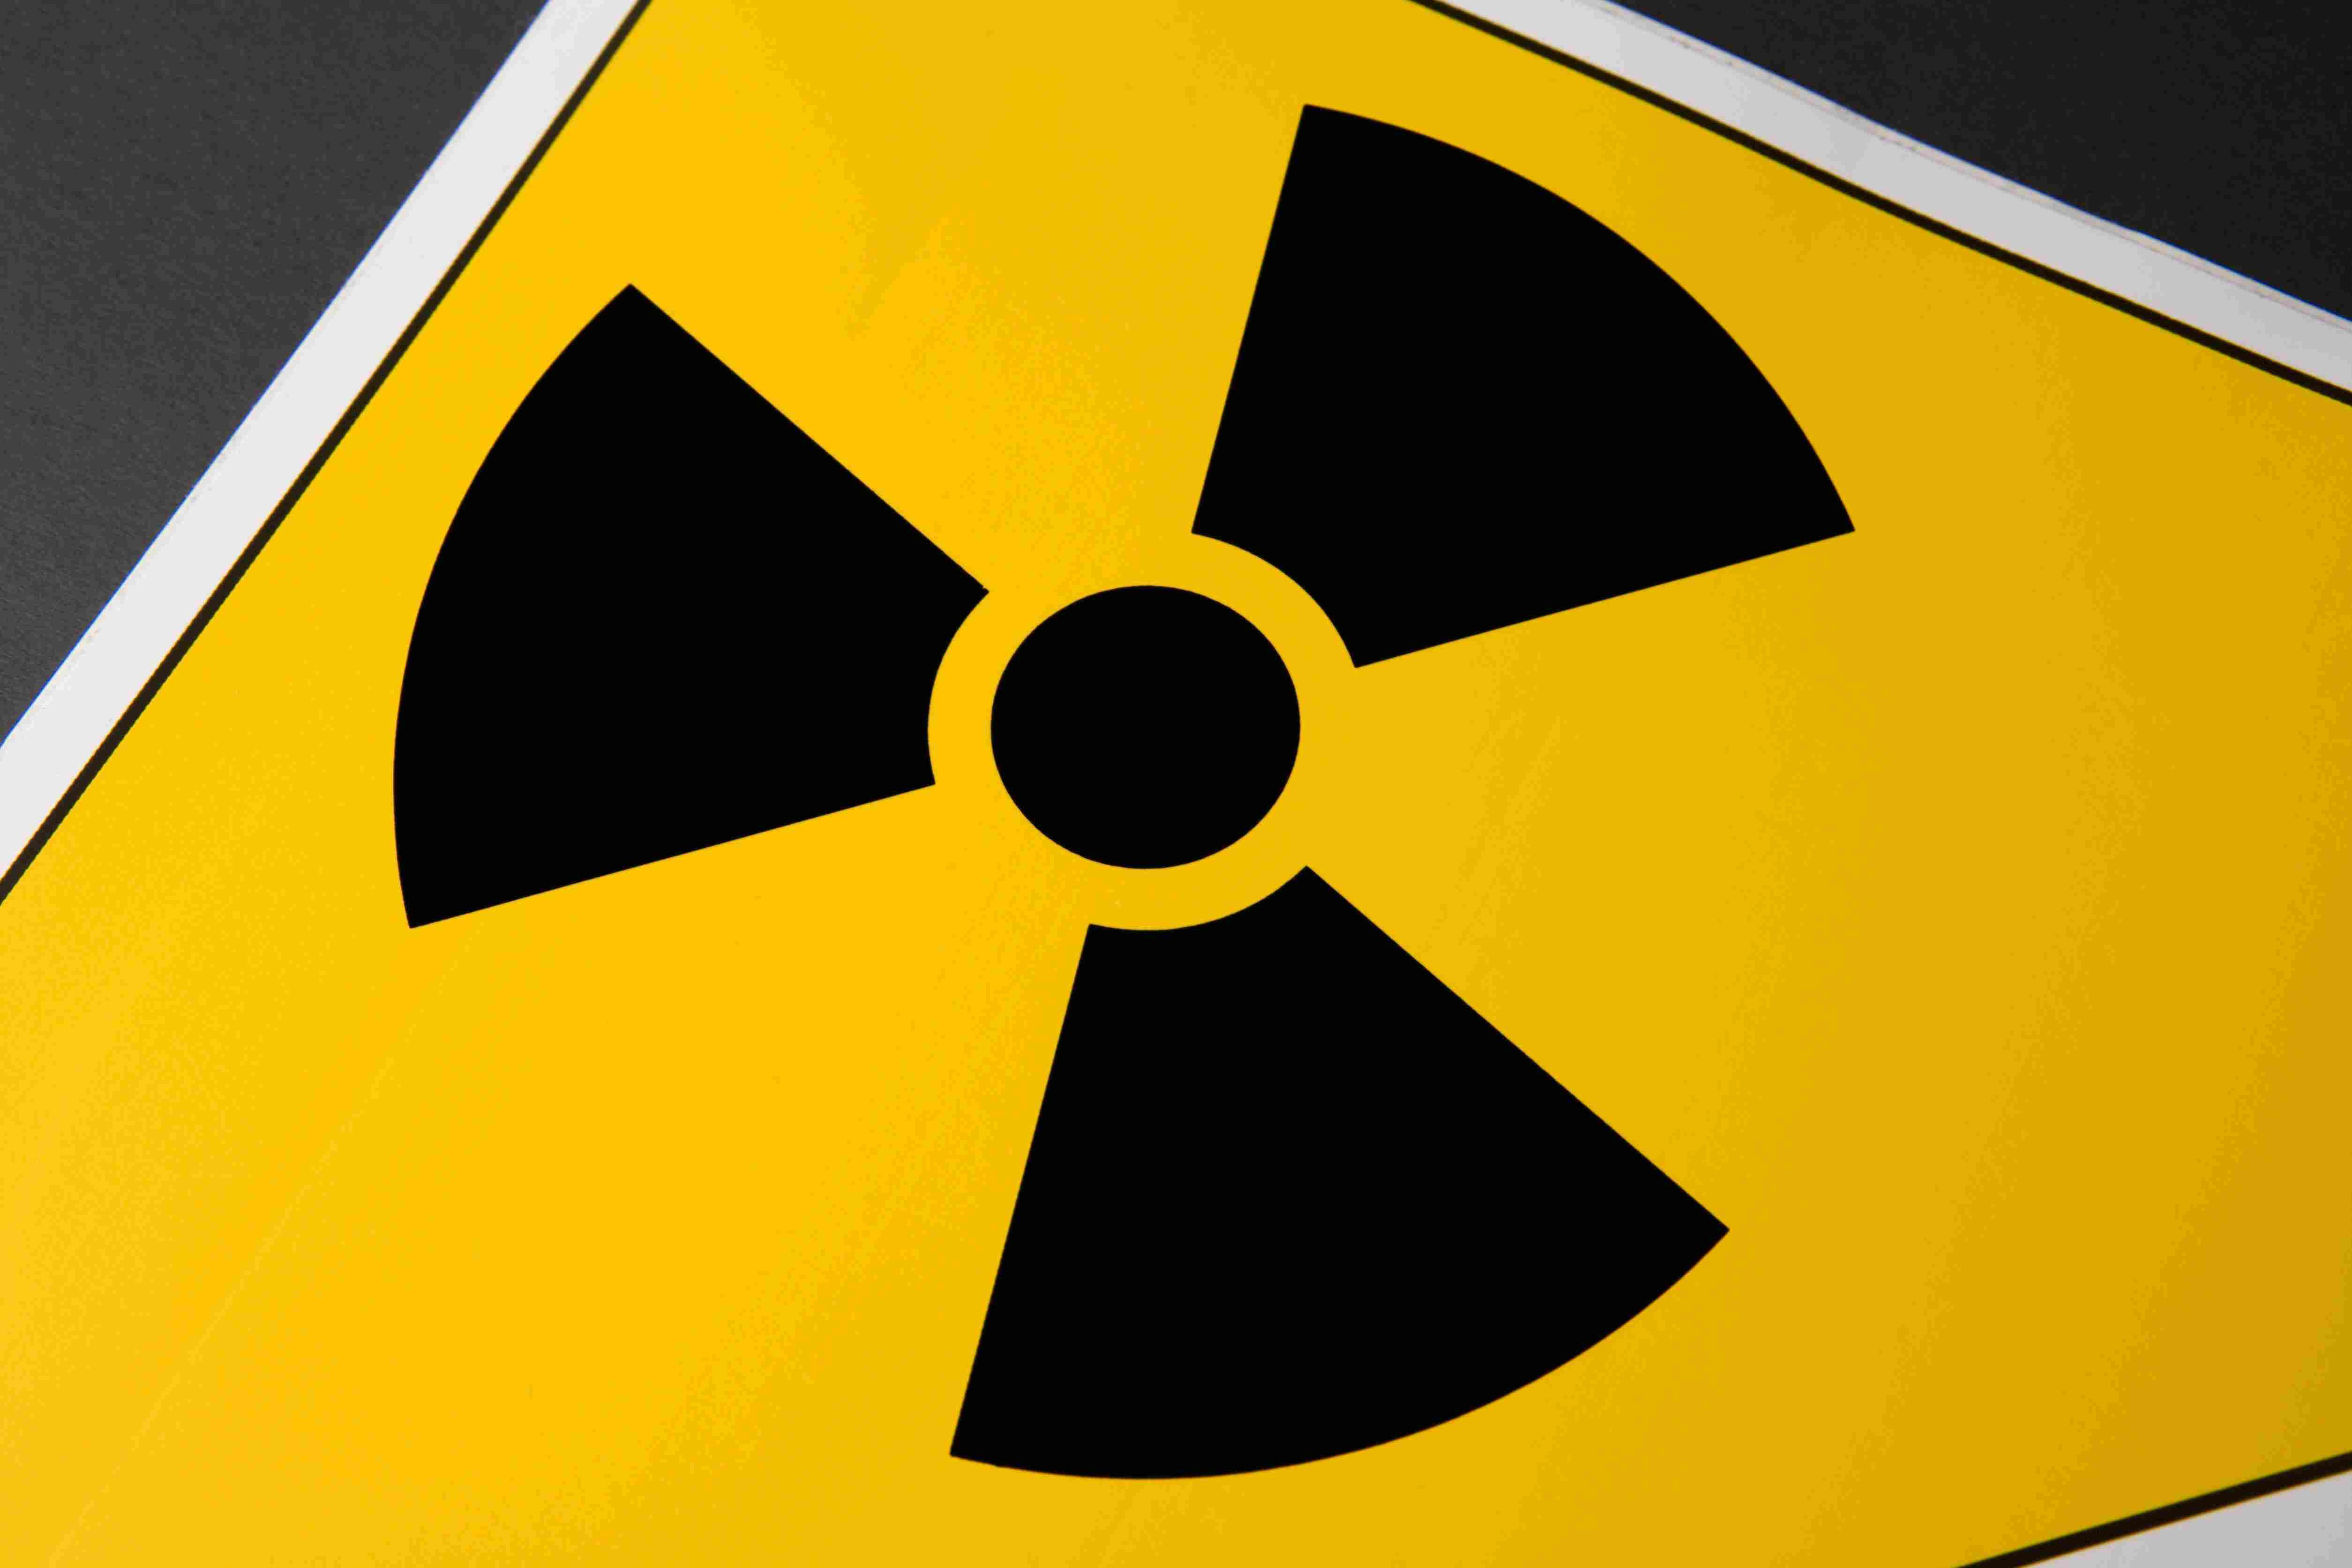 All of the isotopes of hassium are radioactive.